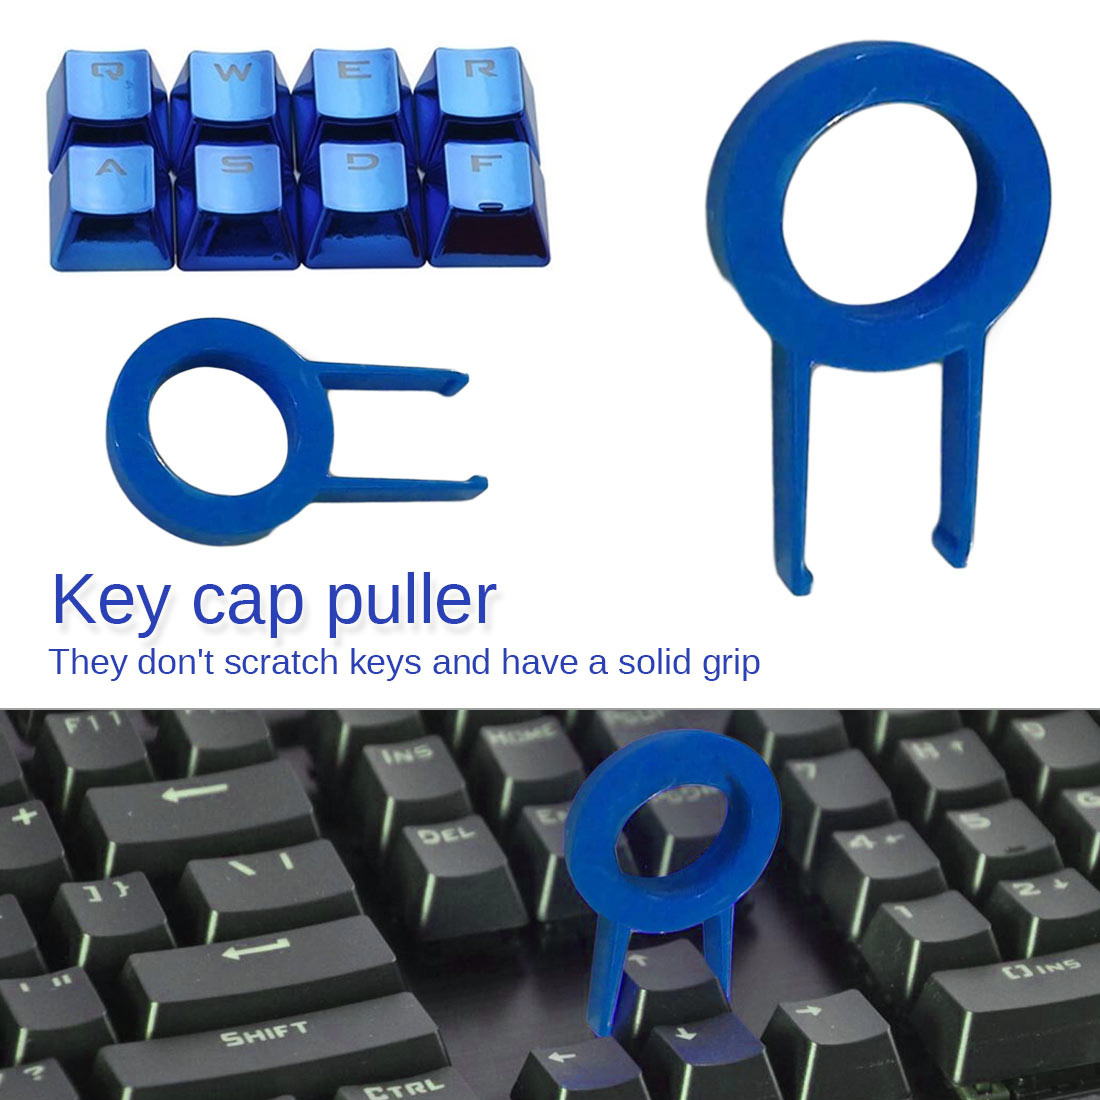 Mechanical Keyboard Keycap Puller Remover For Keyboards Key Cap Fixing Tool Z09 Drop Ship Keycap Puller